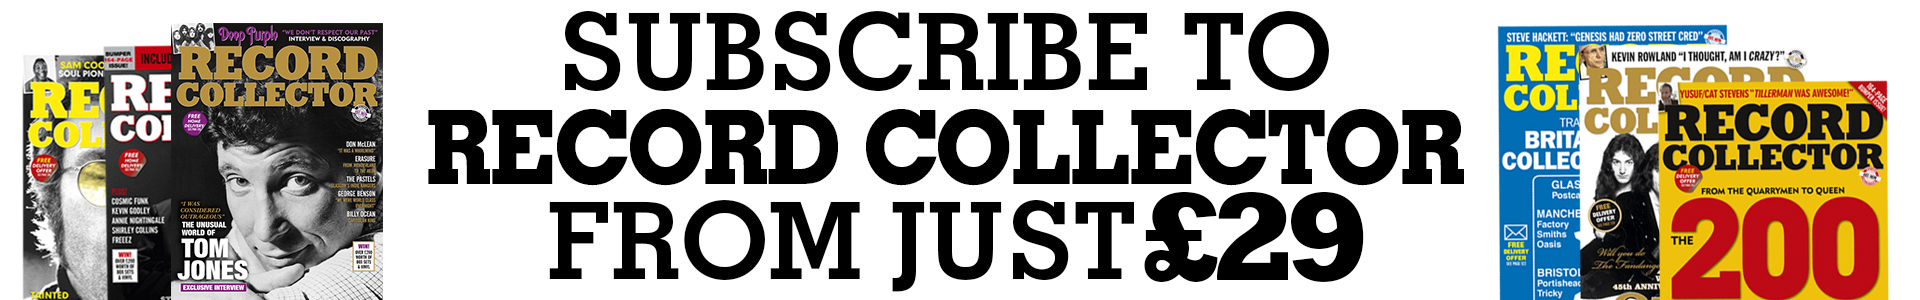 Subscribe to Record Collector